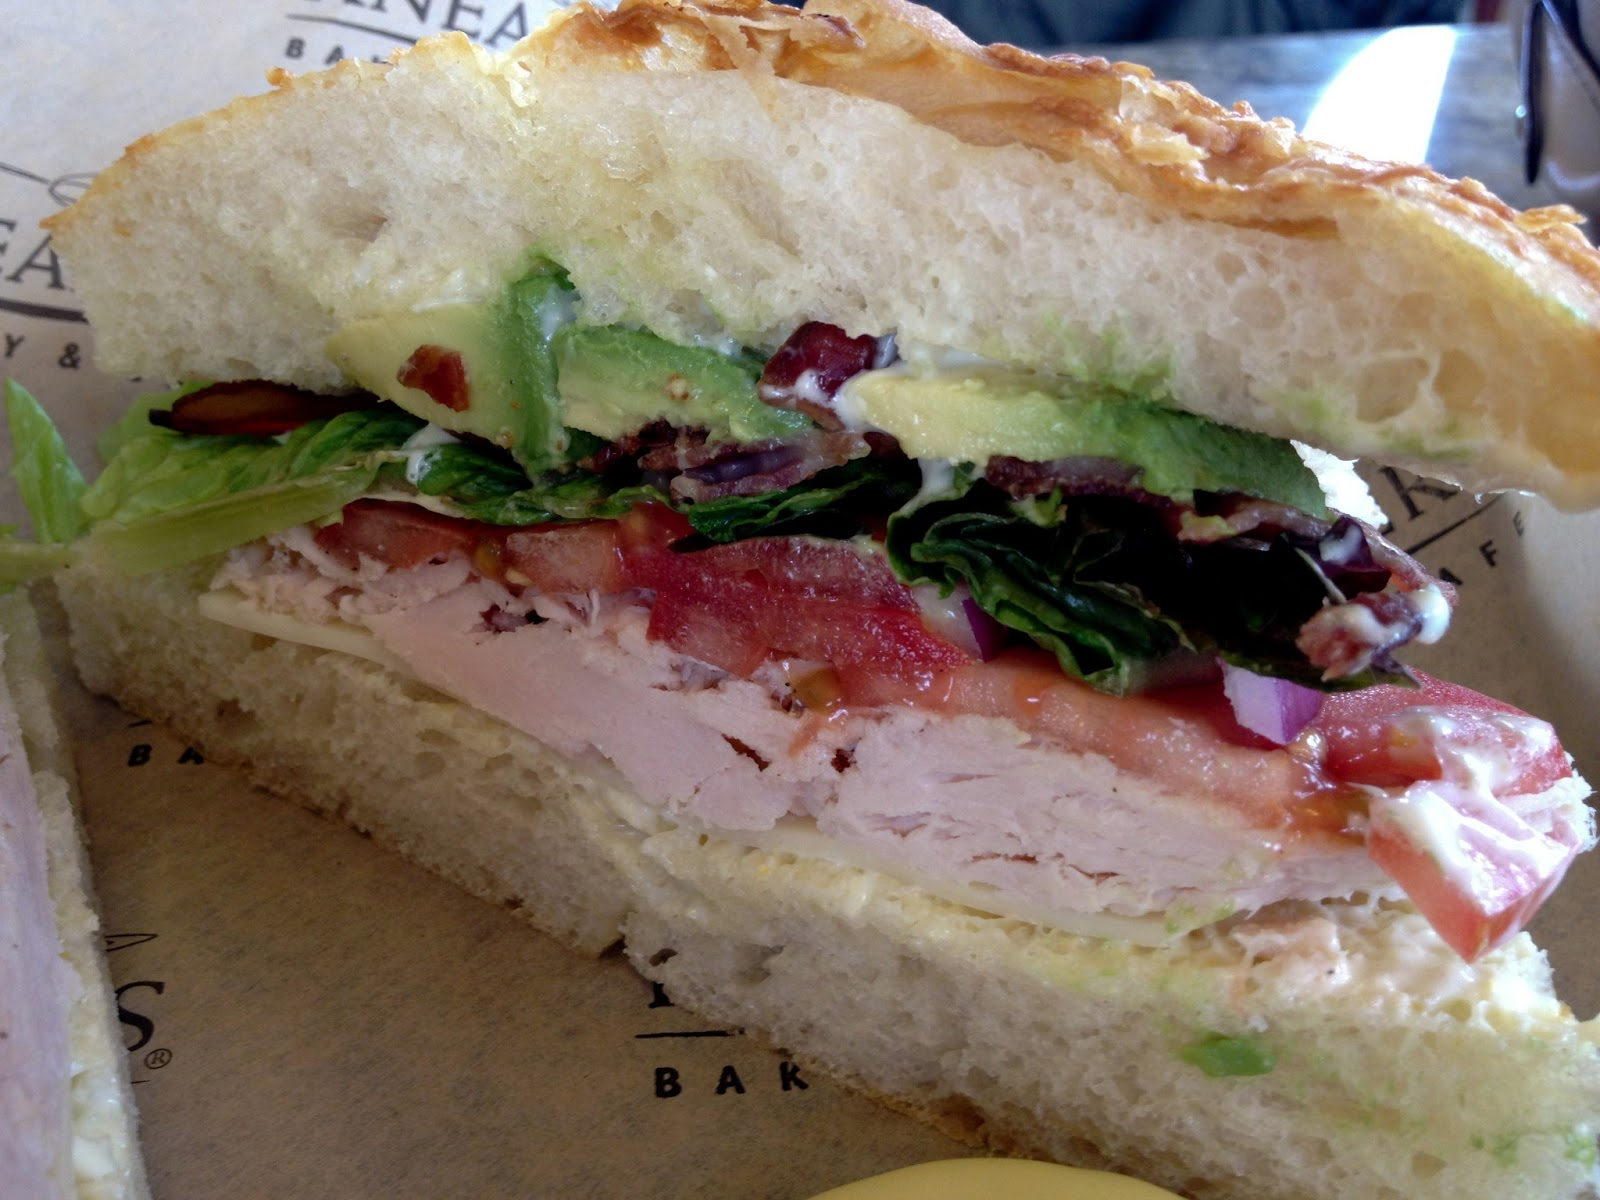 food blog, food blogger, food reviews, utah food review, utah food blogger, kneaders, avocado, turkey sandwich, , tomato